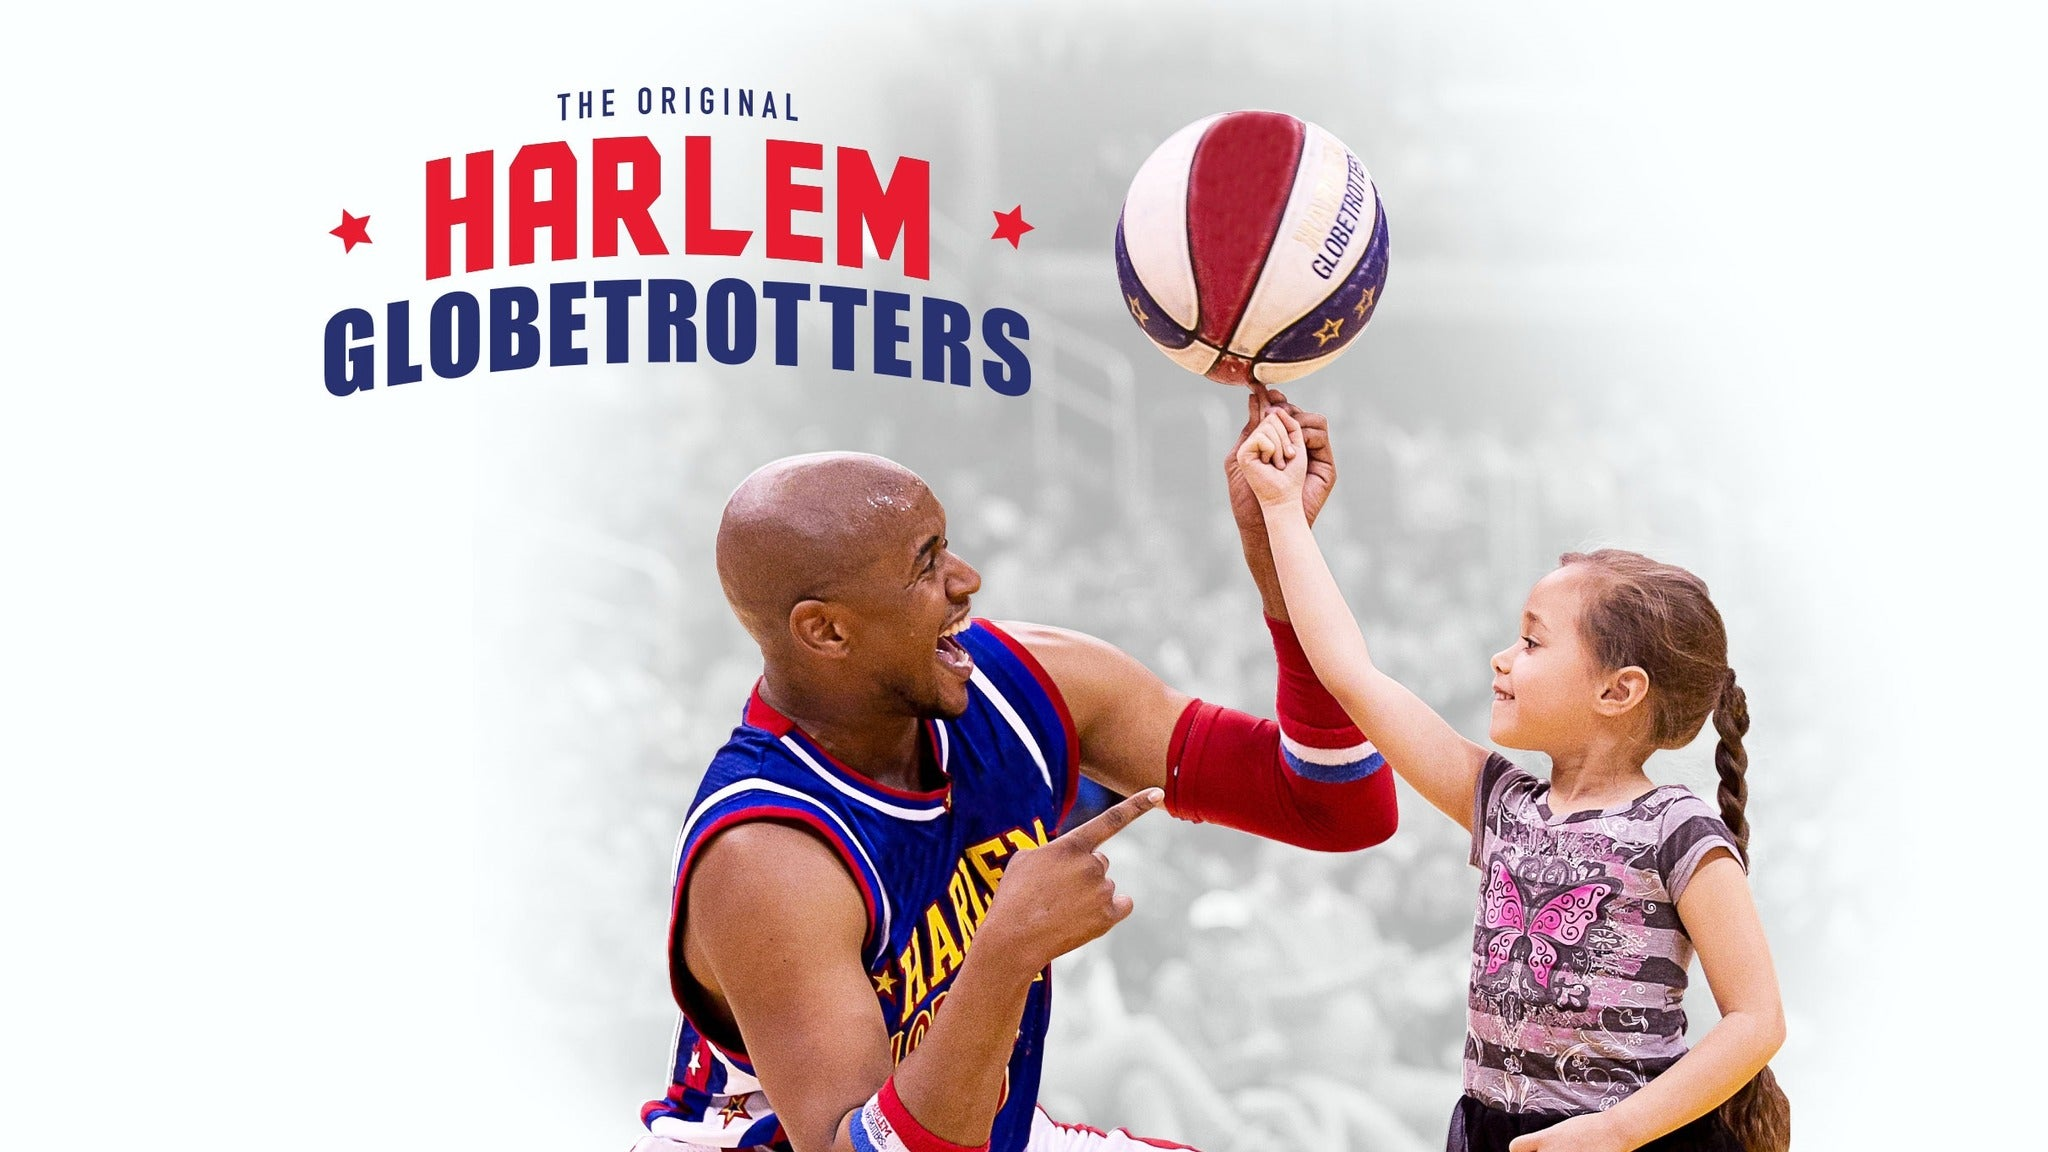 The Harlem Globetrotters 1